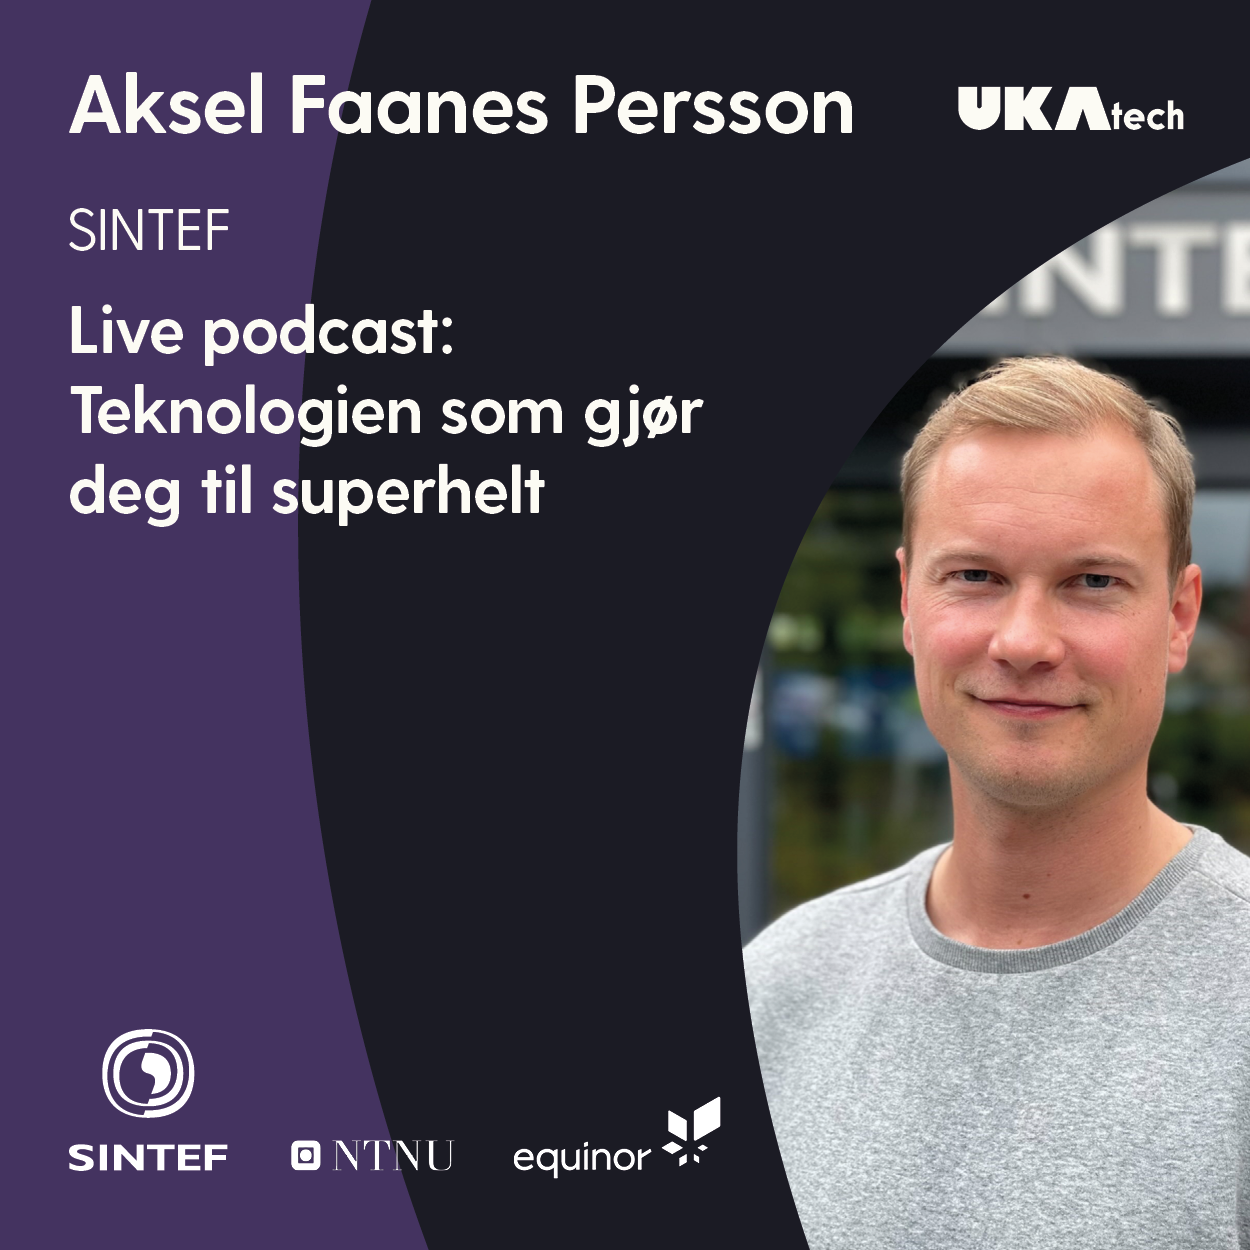 Aksel Faanes Persson